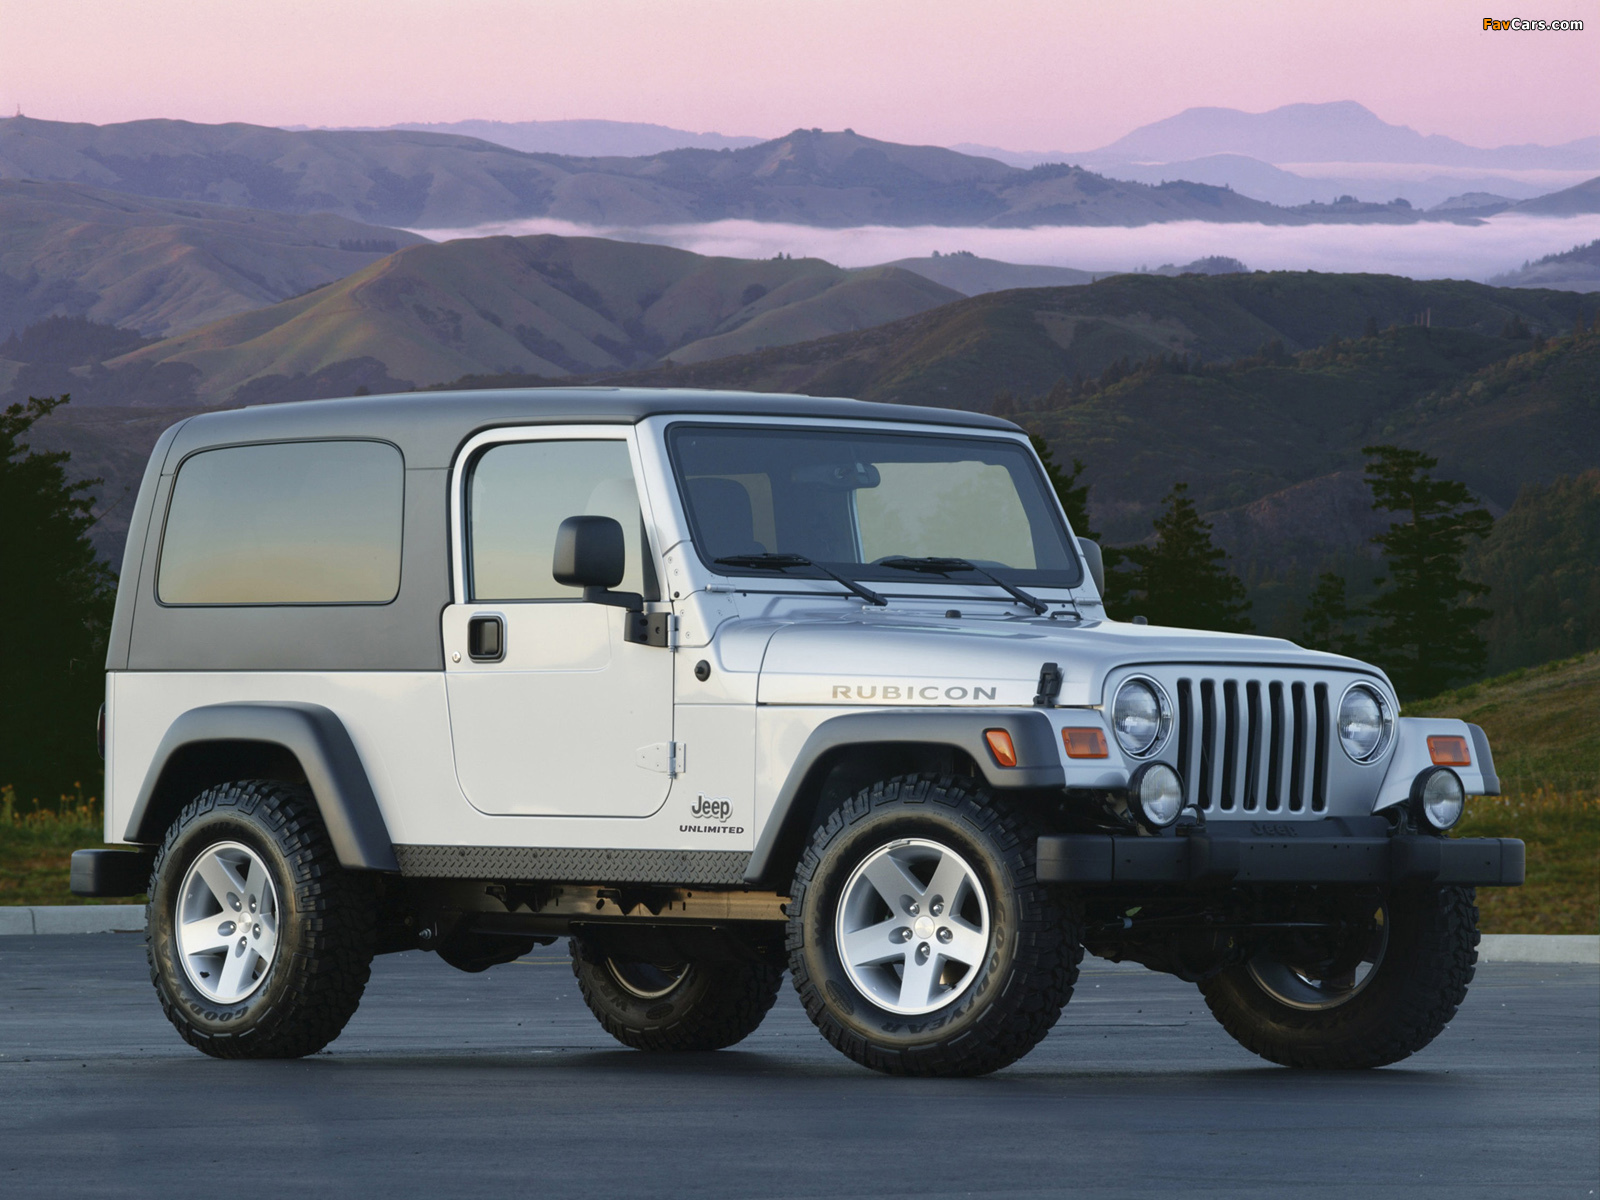 2009 Jeep Jk Service Manual